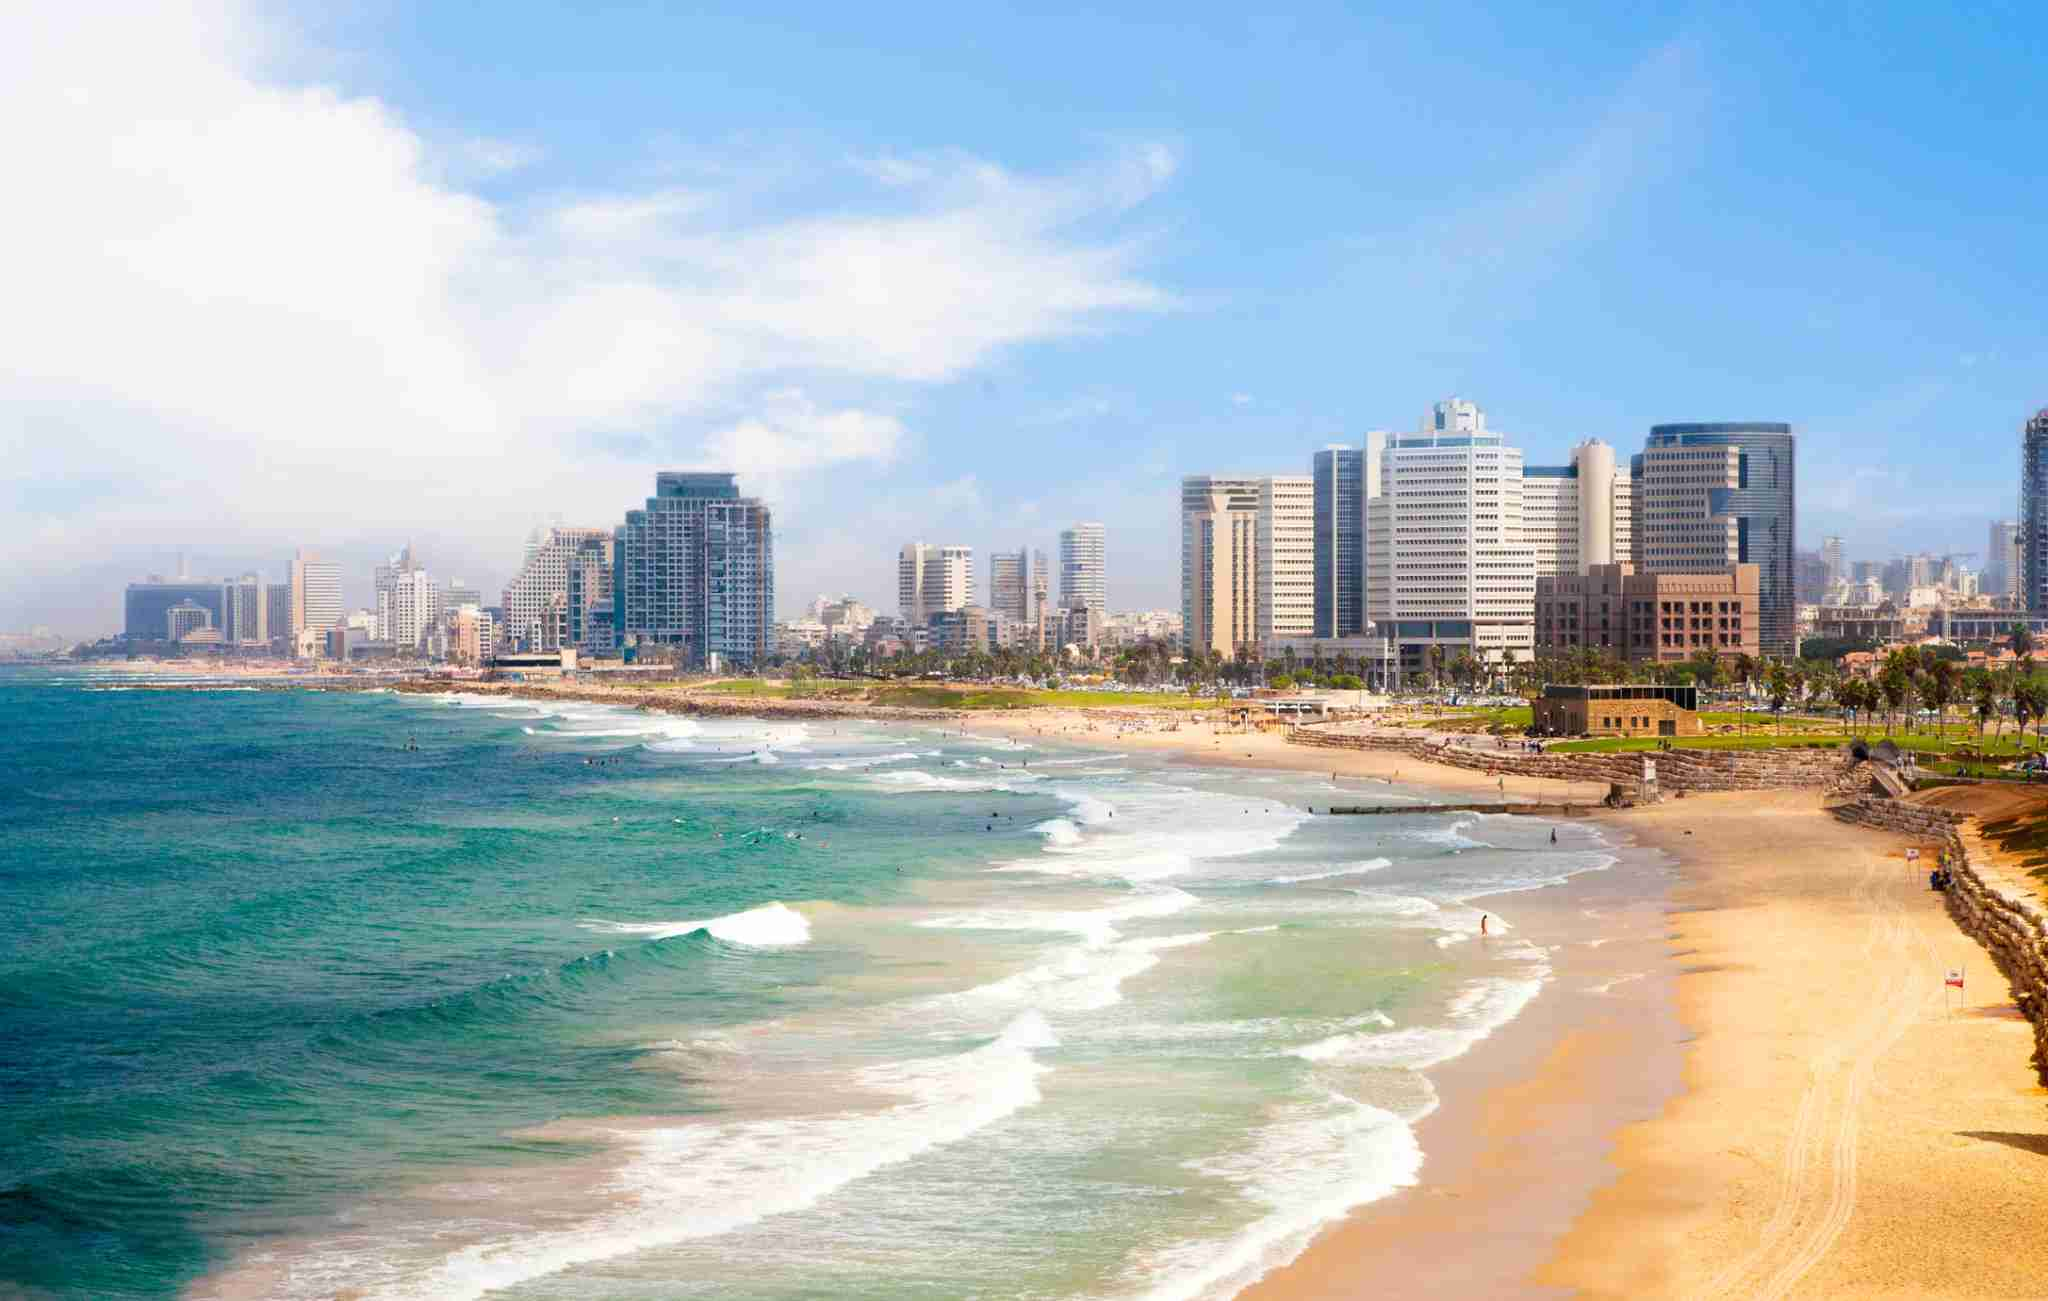 The Tel Aviv beachfront is gorgeous. Image courtesy of stellalevi via Getty Images.